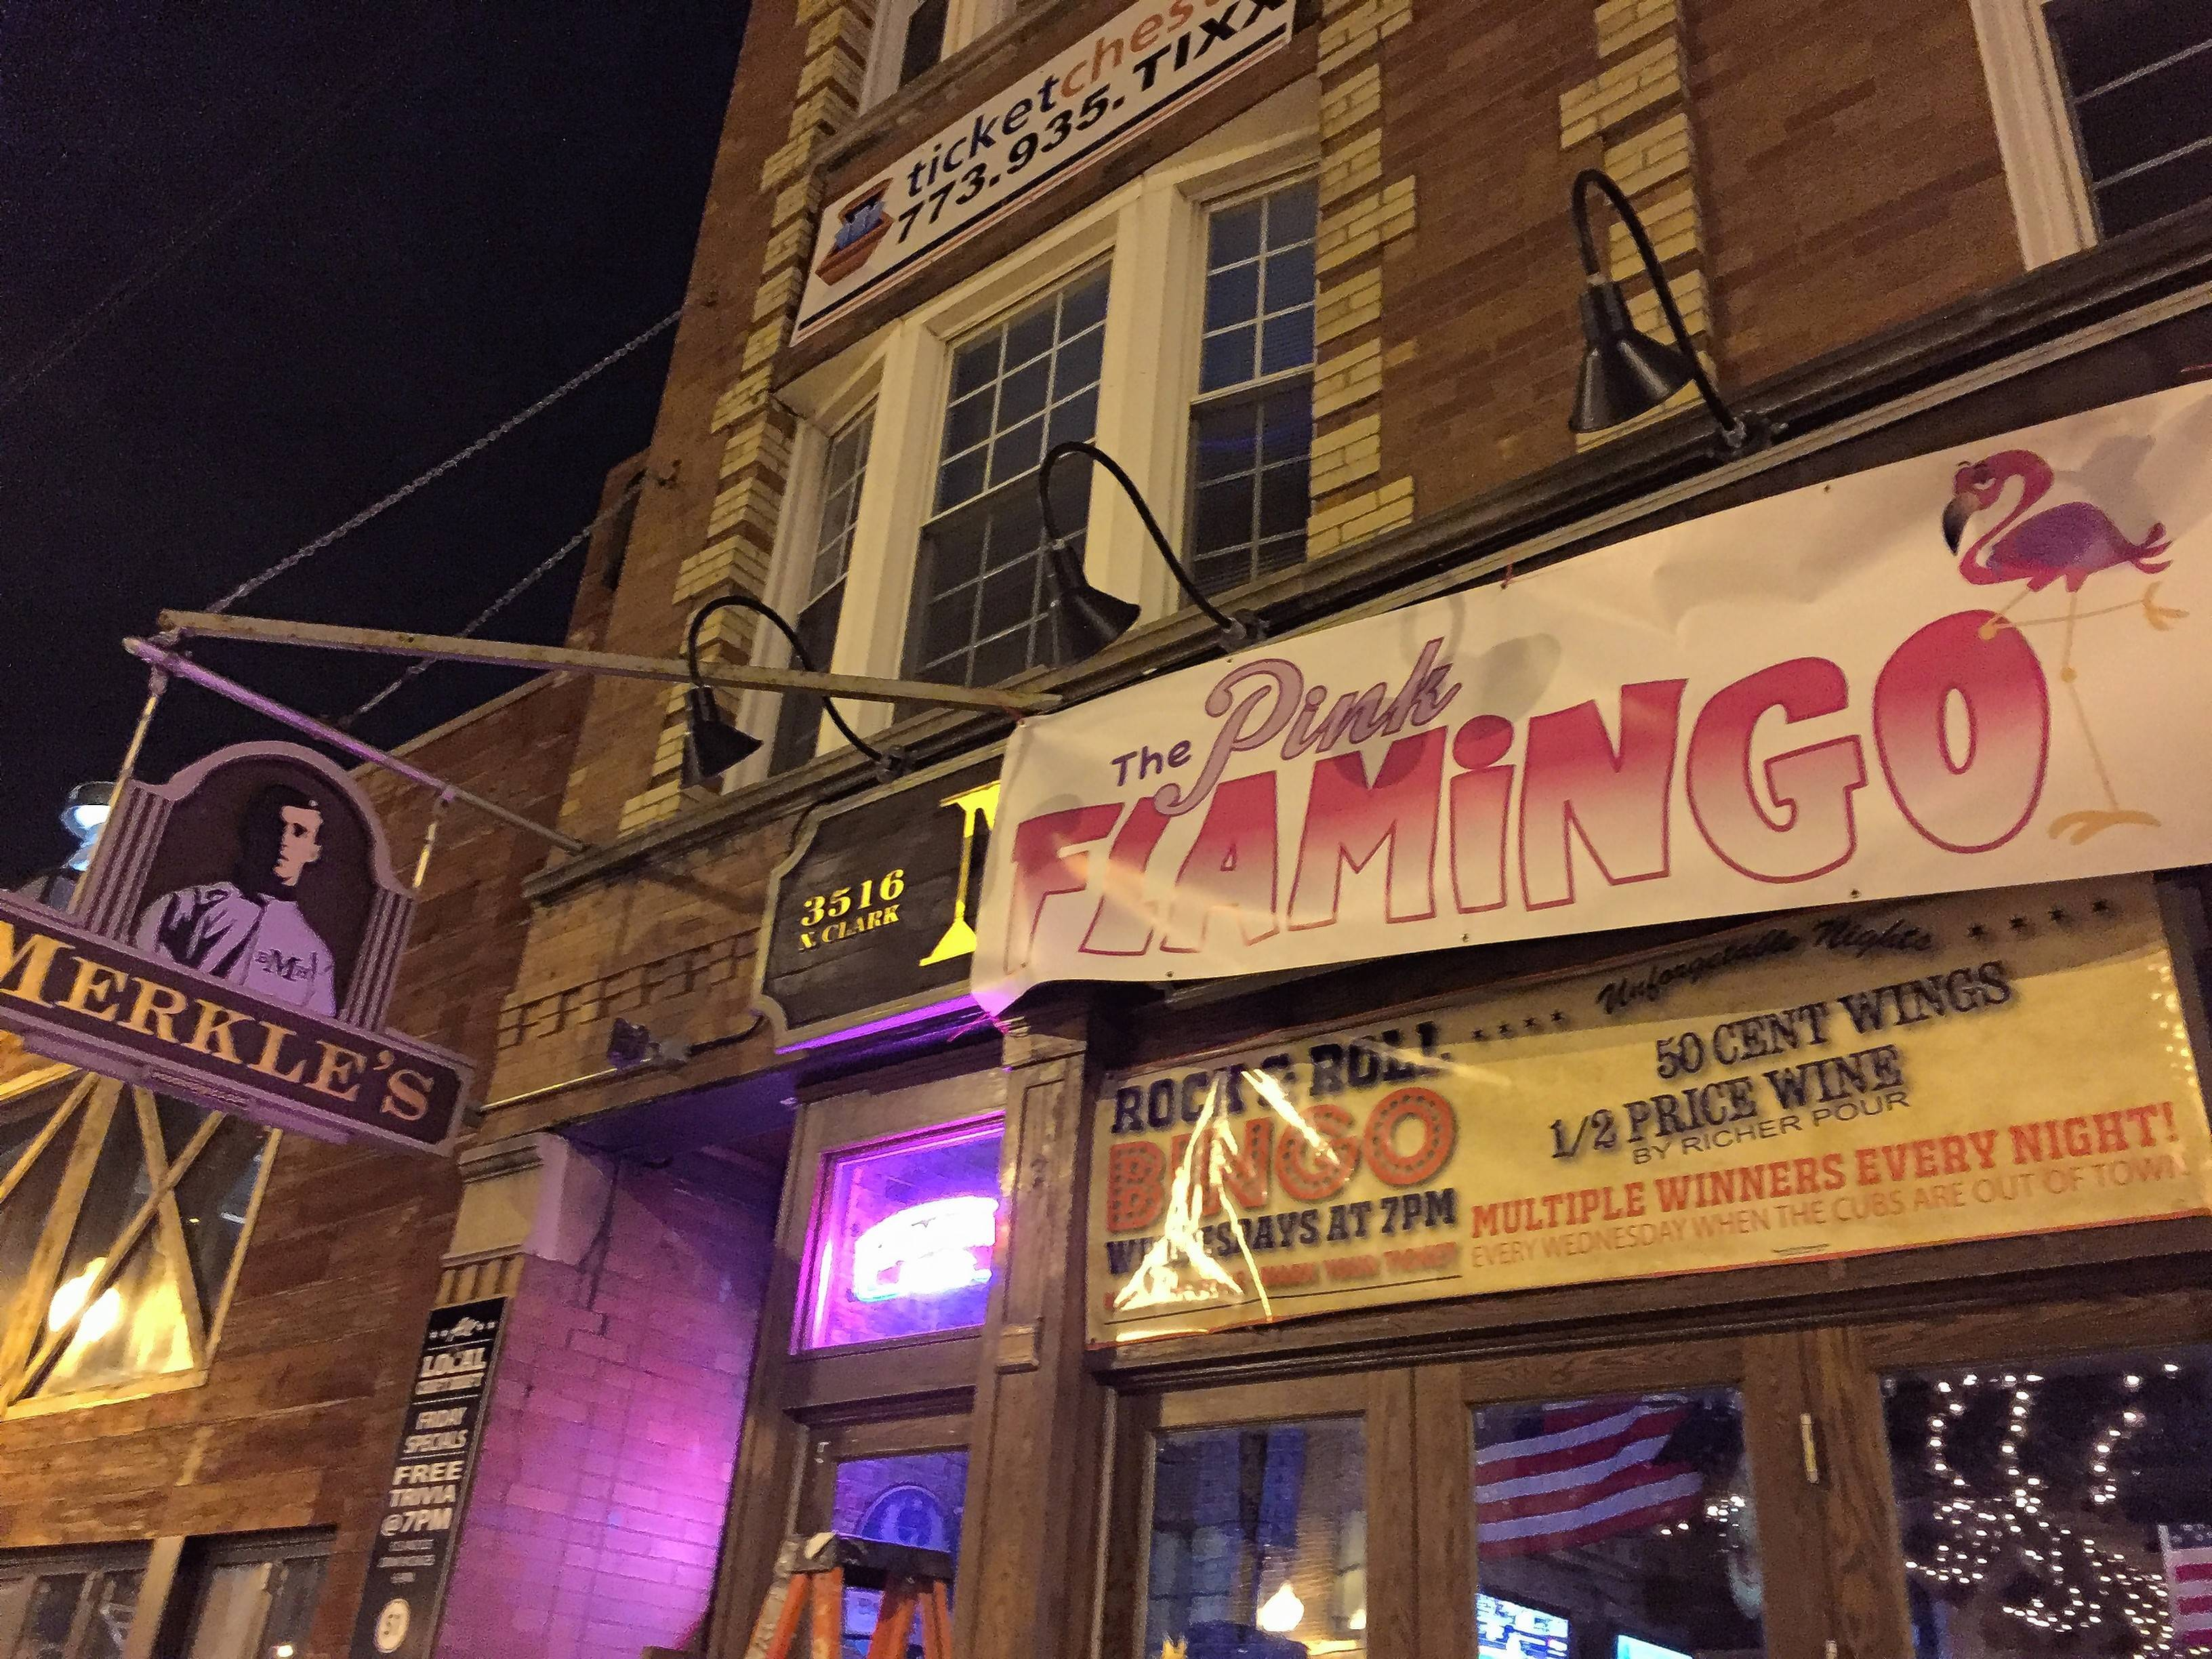 "In honor of Cubs manager Joe Maddon, who once said he wanted to own a bar called The Pink Flamingo, Wrigleyville's Merkle's Bar and Grill has officially renamed the bar ""The Pink Flamingo"" for the playoffs."